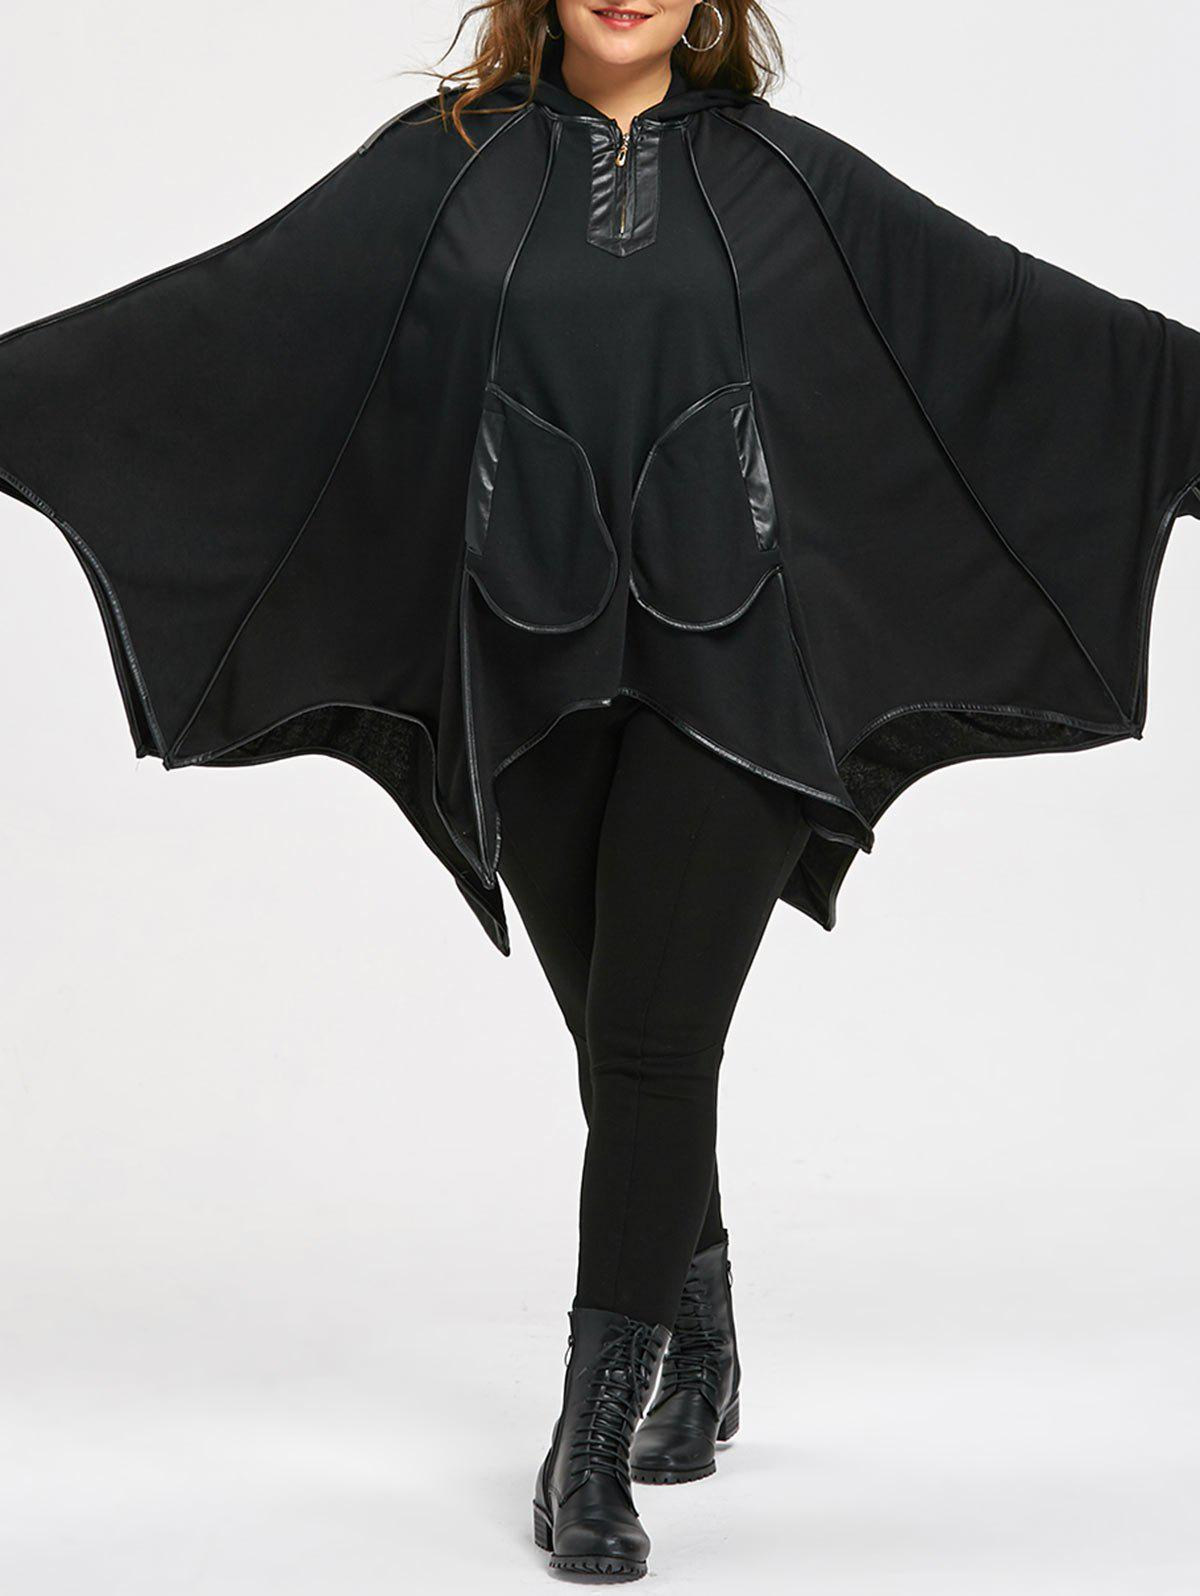 Halloween Plus Size Faux Leather Trim Batwing CoatWOMEN<br><br>Size: 2XL; Color: BLACK; Clothes Type: Others; Material: Polyester,Spandex; Type: Bat Sleeved; Shirt Length: Regular; Sleeve Length: Full; Collar: Hooded; Pattern Type: Solid; Embellishment: Epaulet,Pockets; Style: Novelty; Season: Fall,Spring; Weight: 0.4000kg; Package Contents: 1 x Coat;